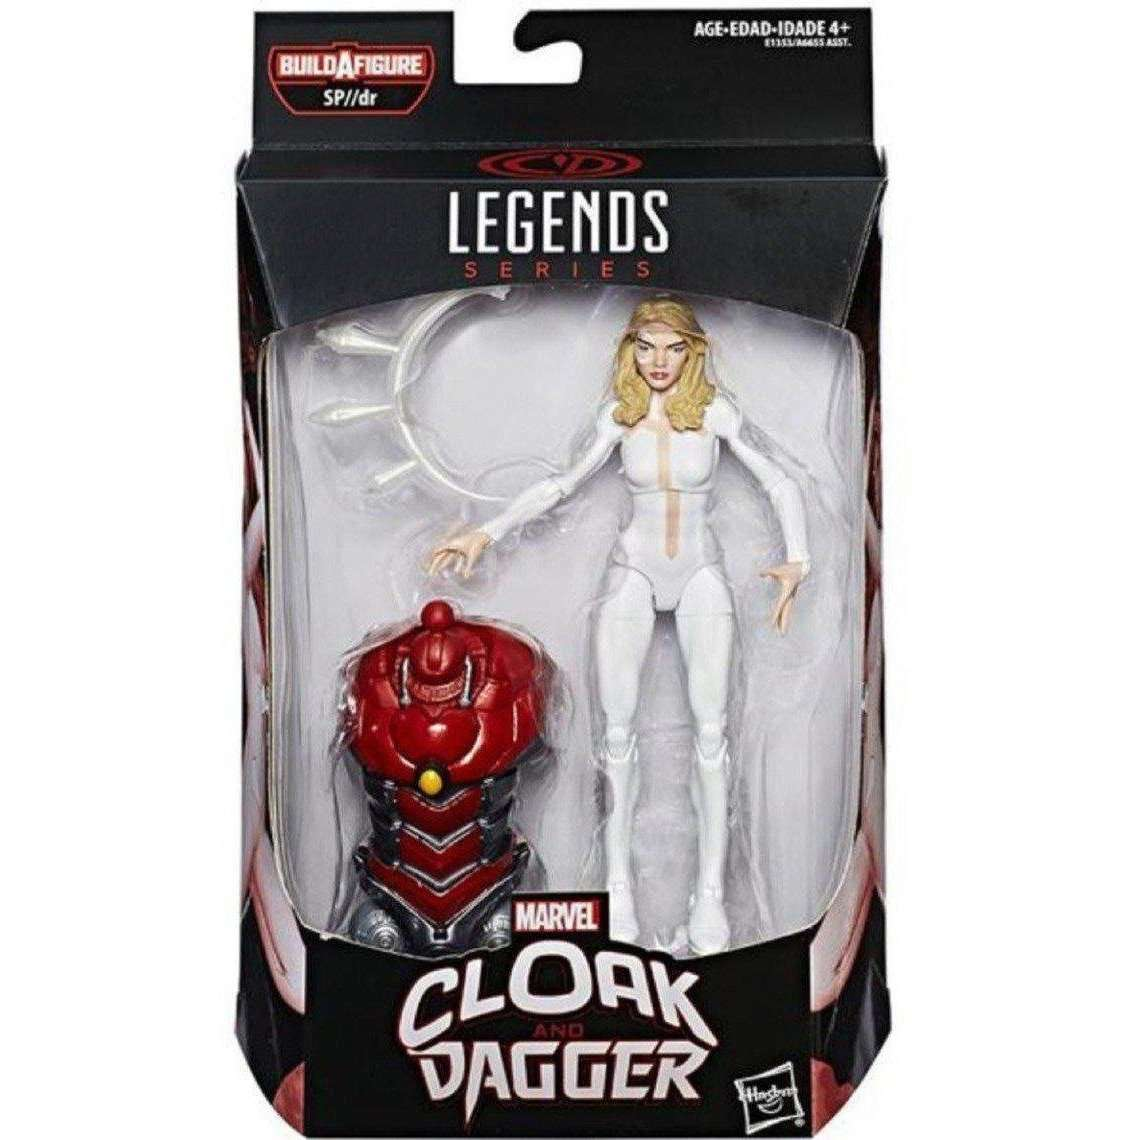 Spider-Man Marvel Legends Wave 10 (SP//DR BAF) - Dagger (Cloak & Dagger)